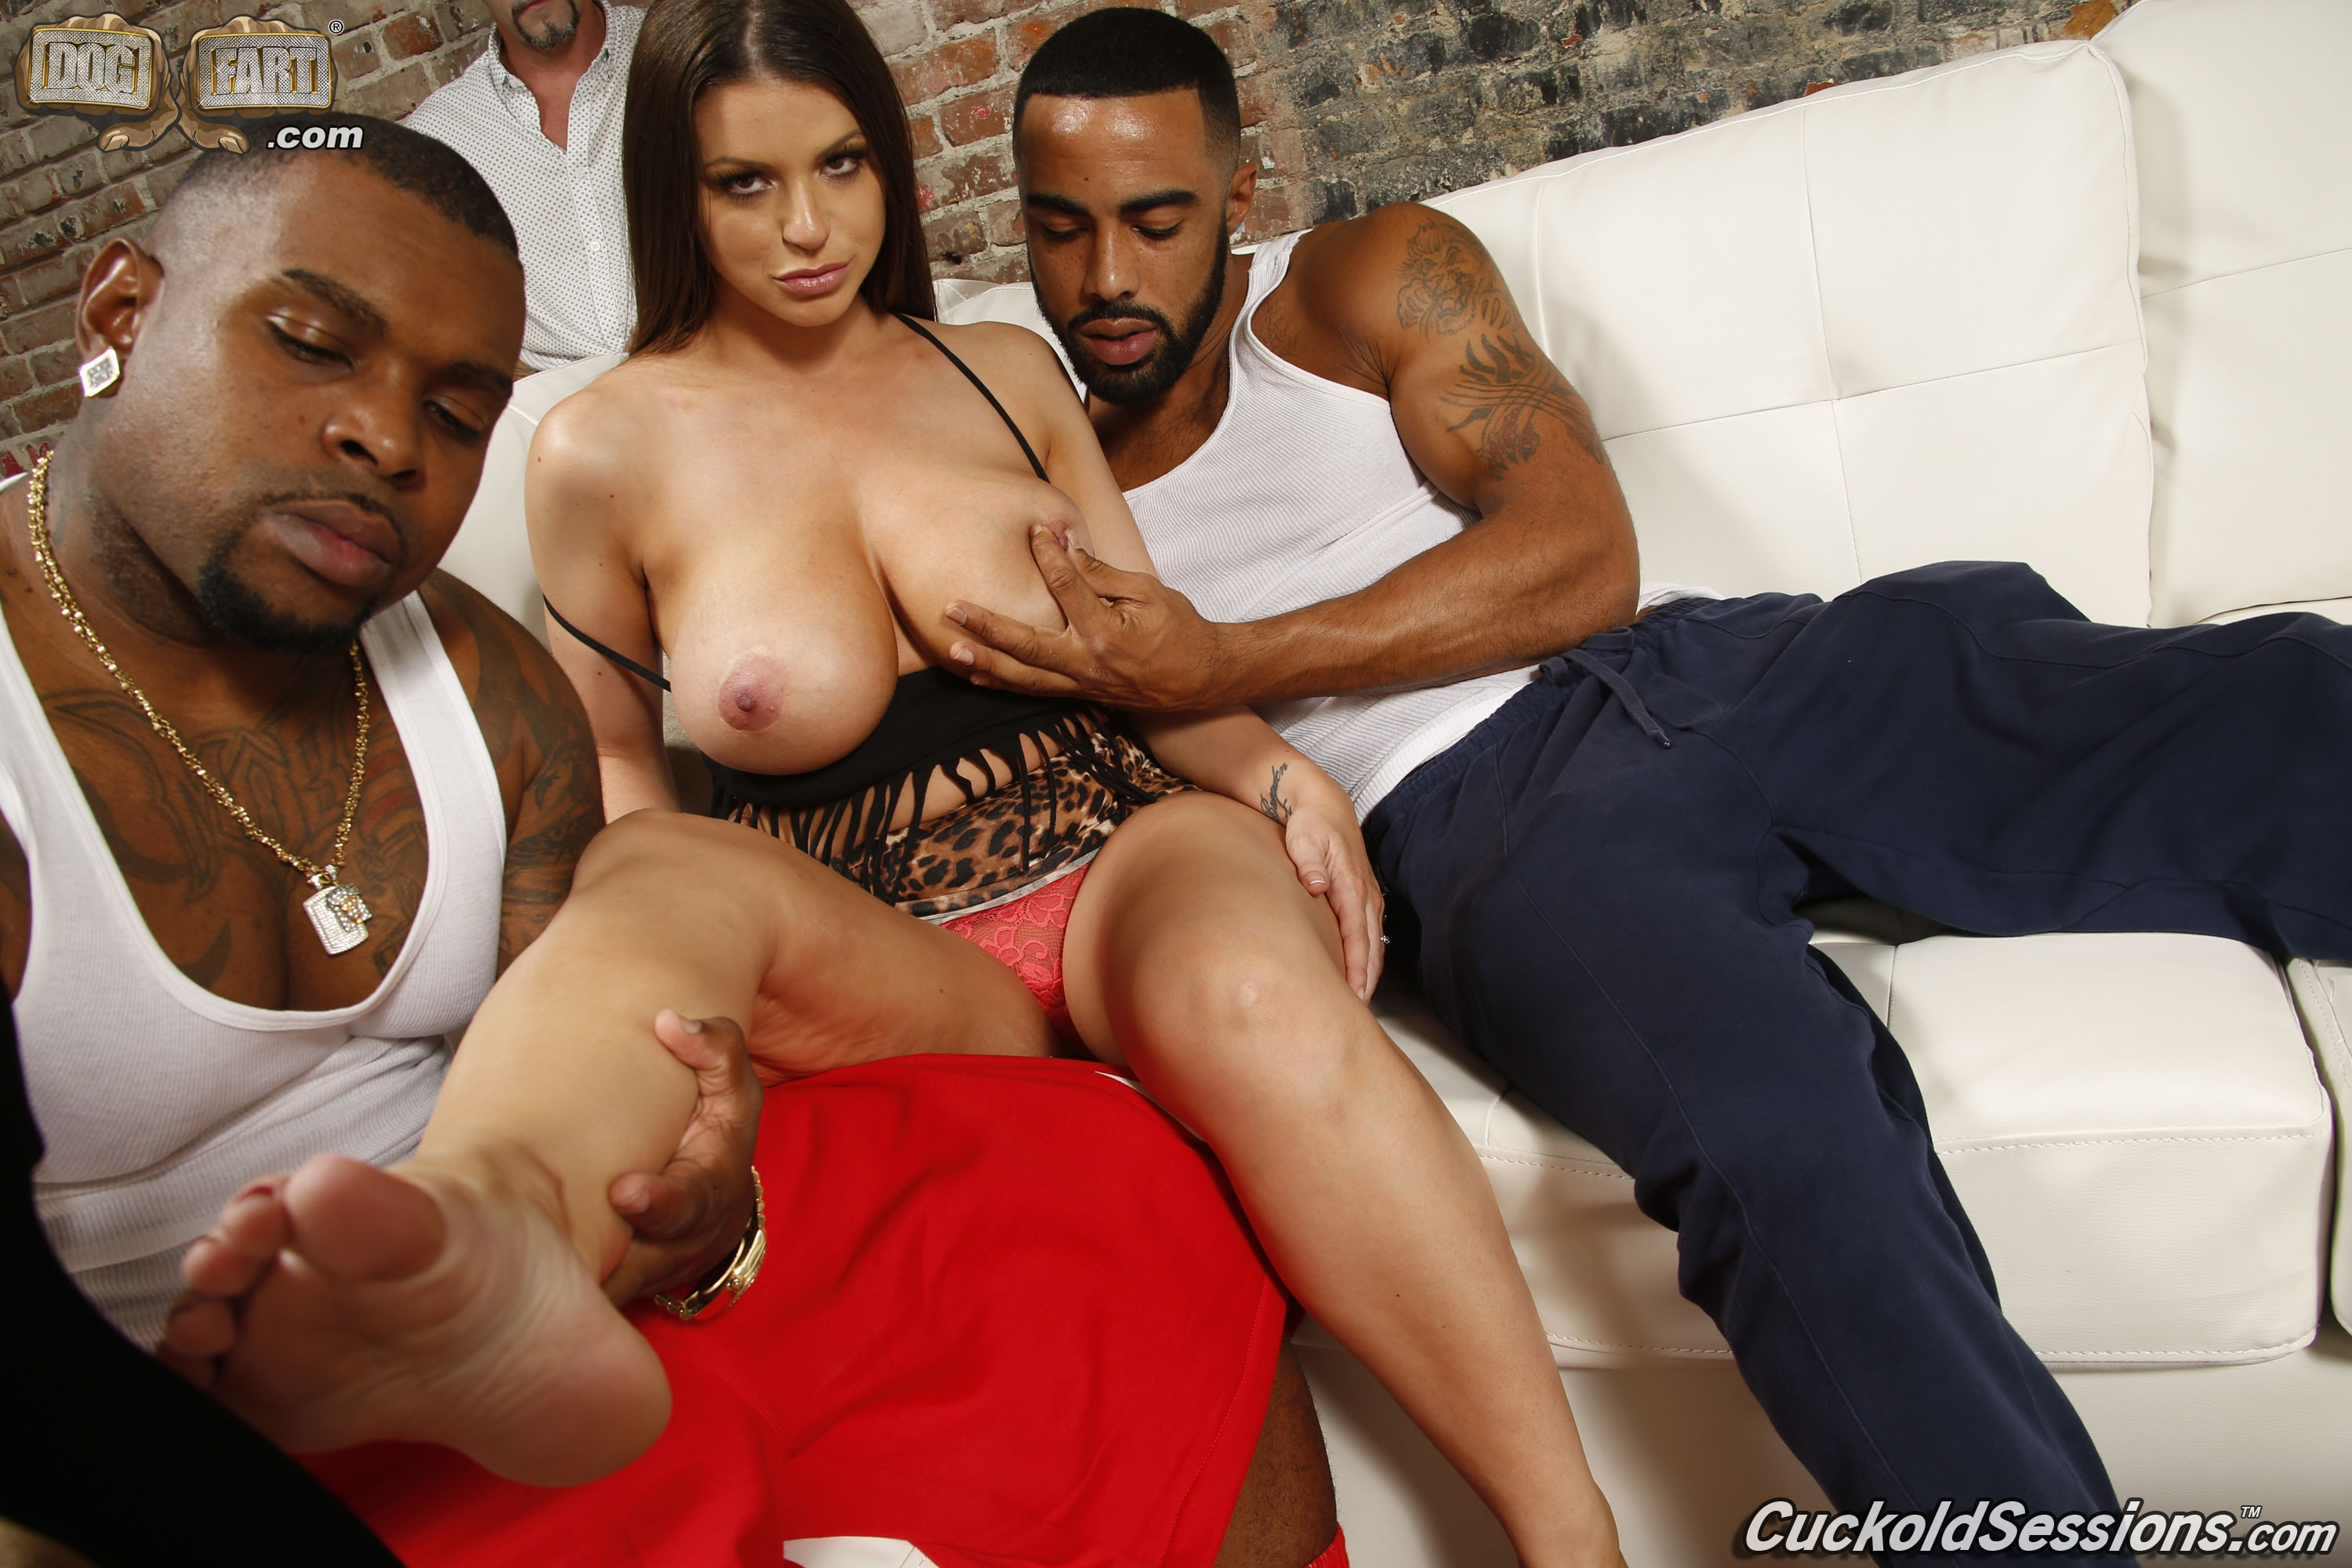 Cuckold sessions brooklyn chase